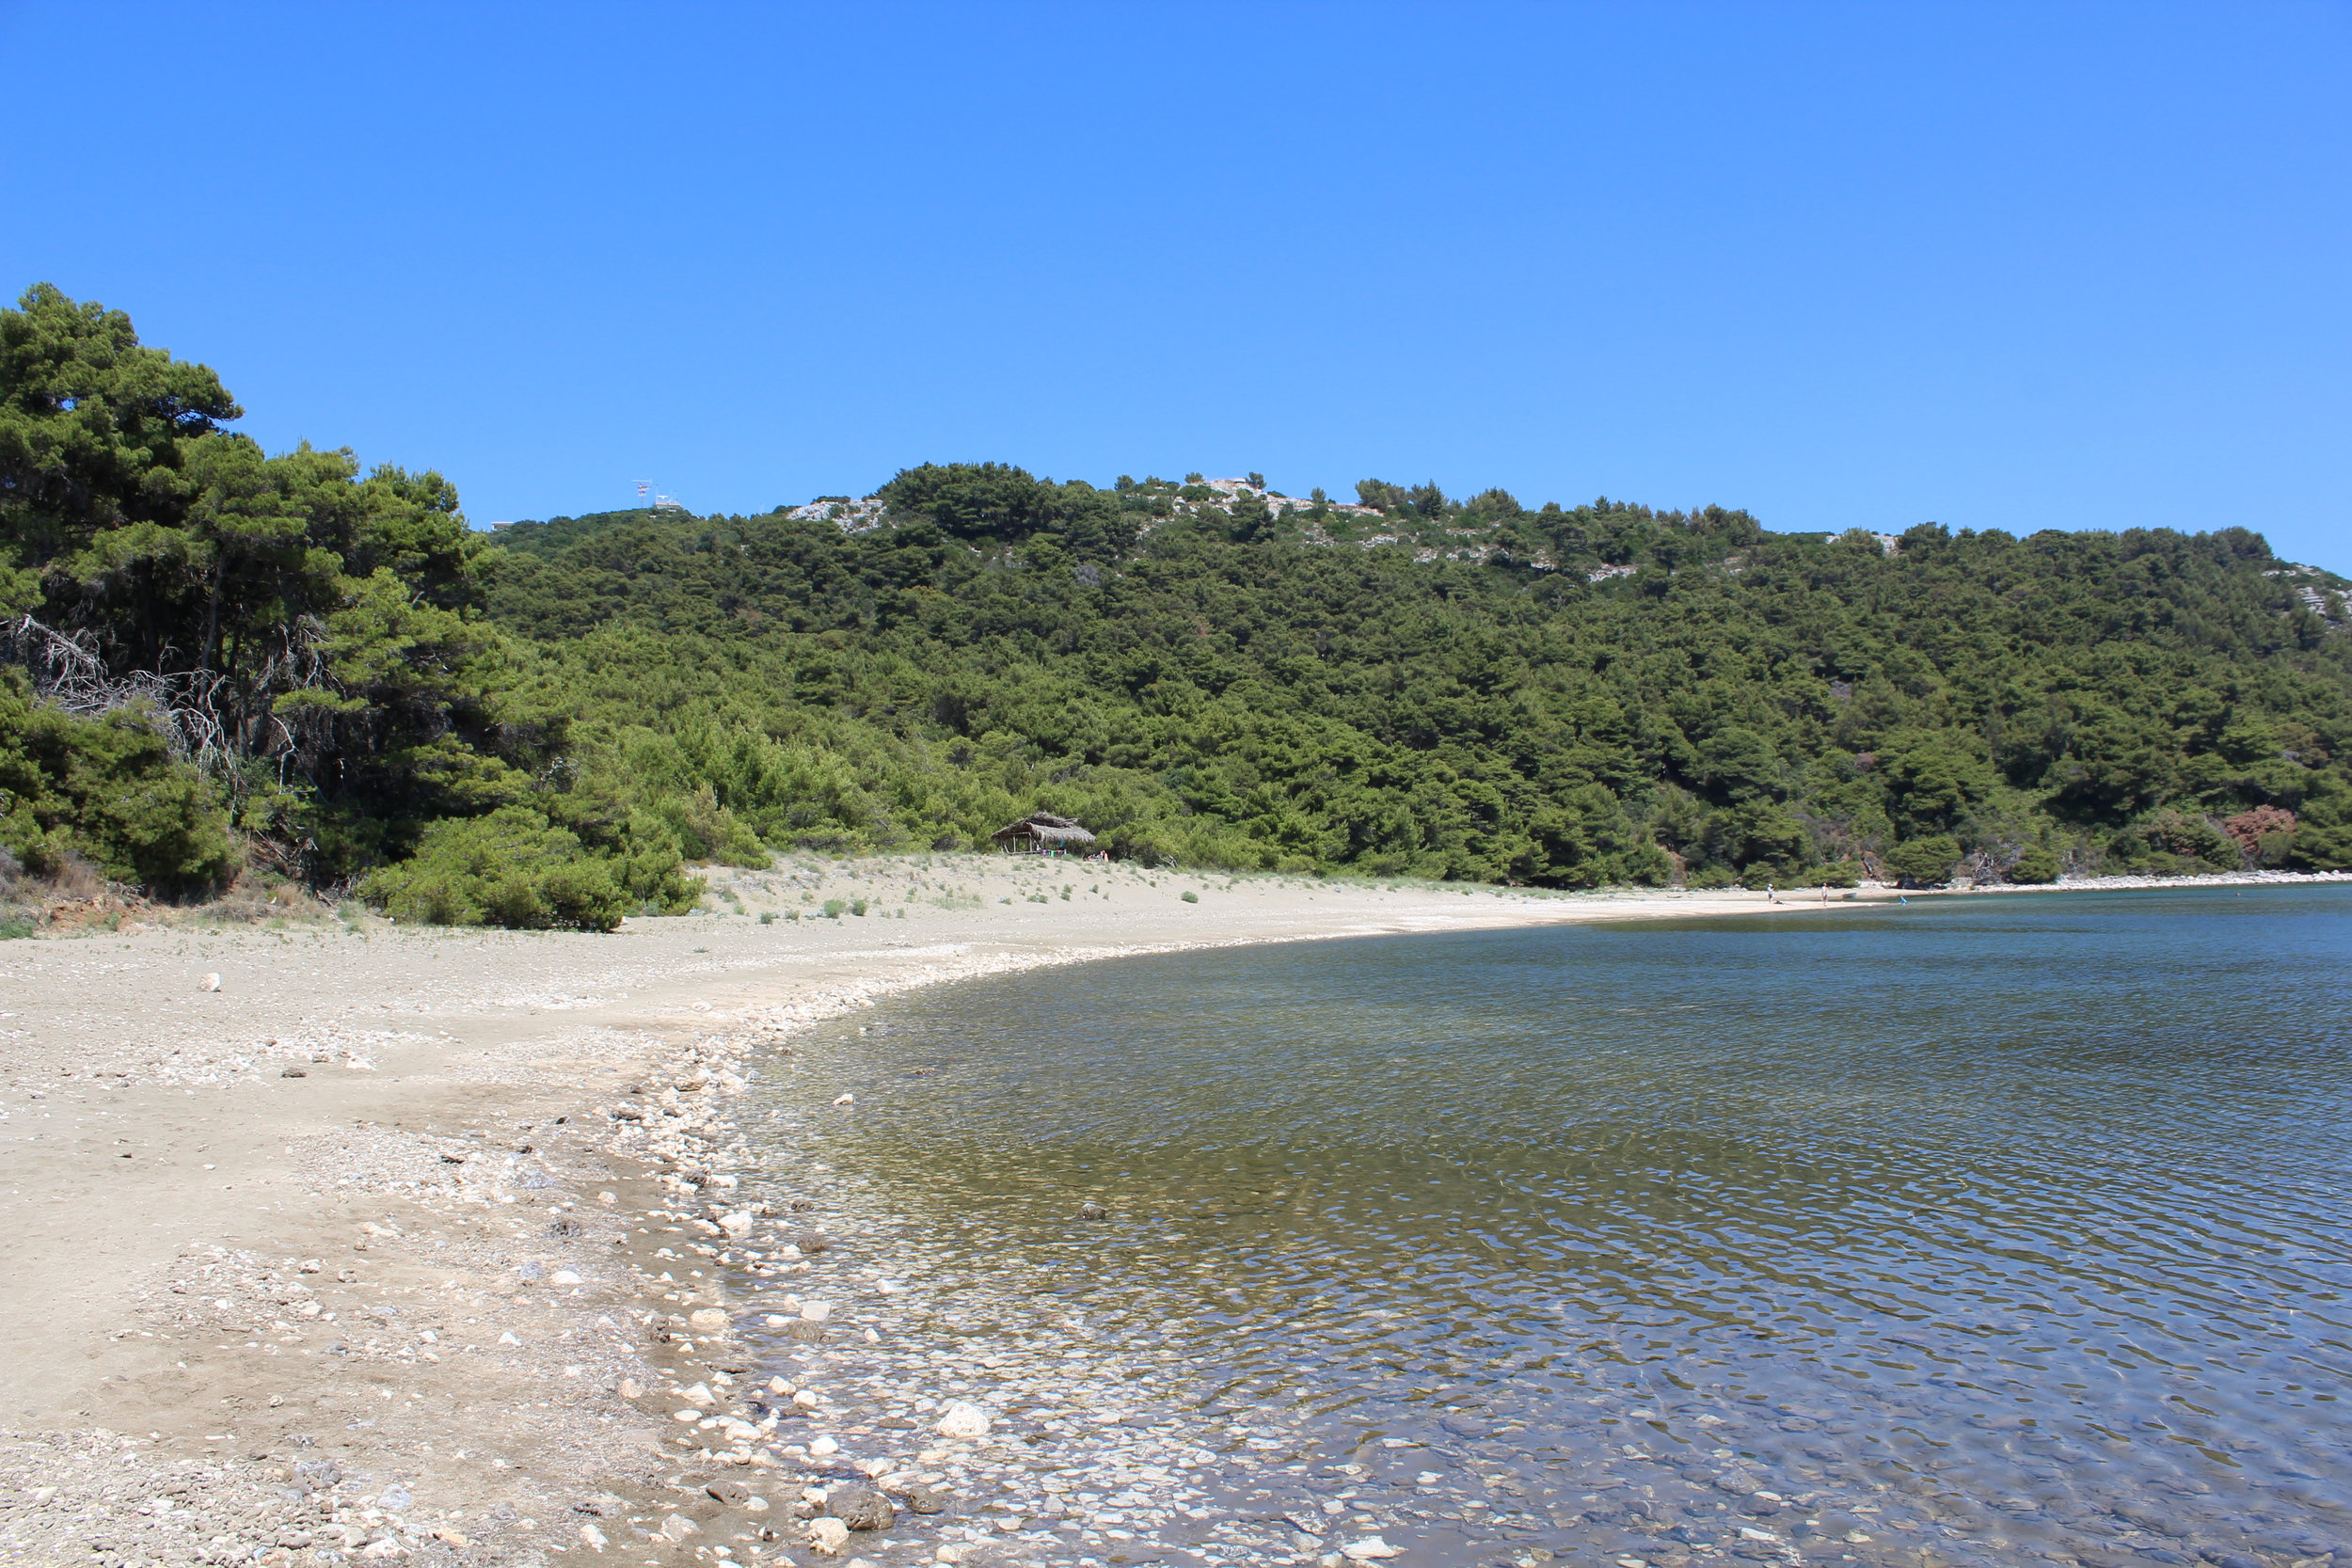 This is a nude beach, trust me.We don't have pictures of the nude people to prove it because that would be creepy, and possibly illegal.